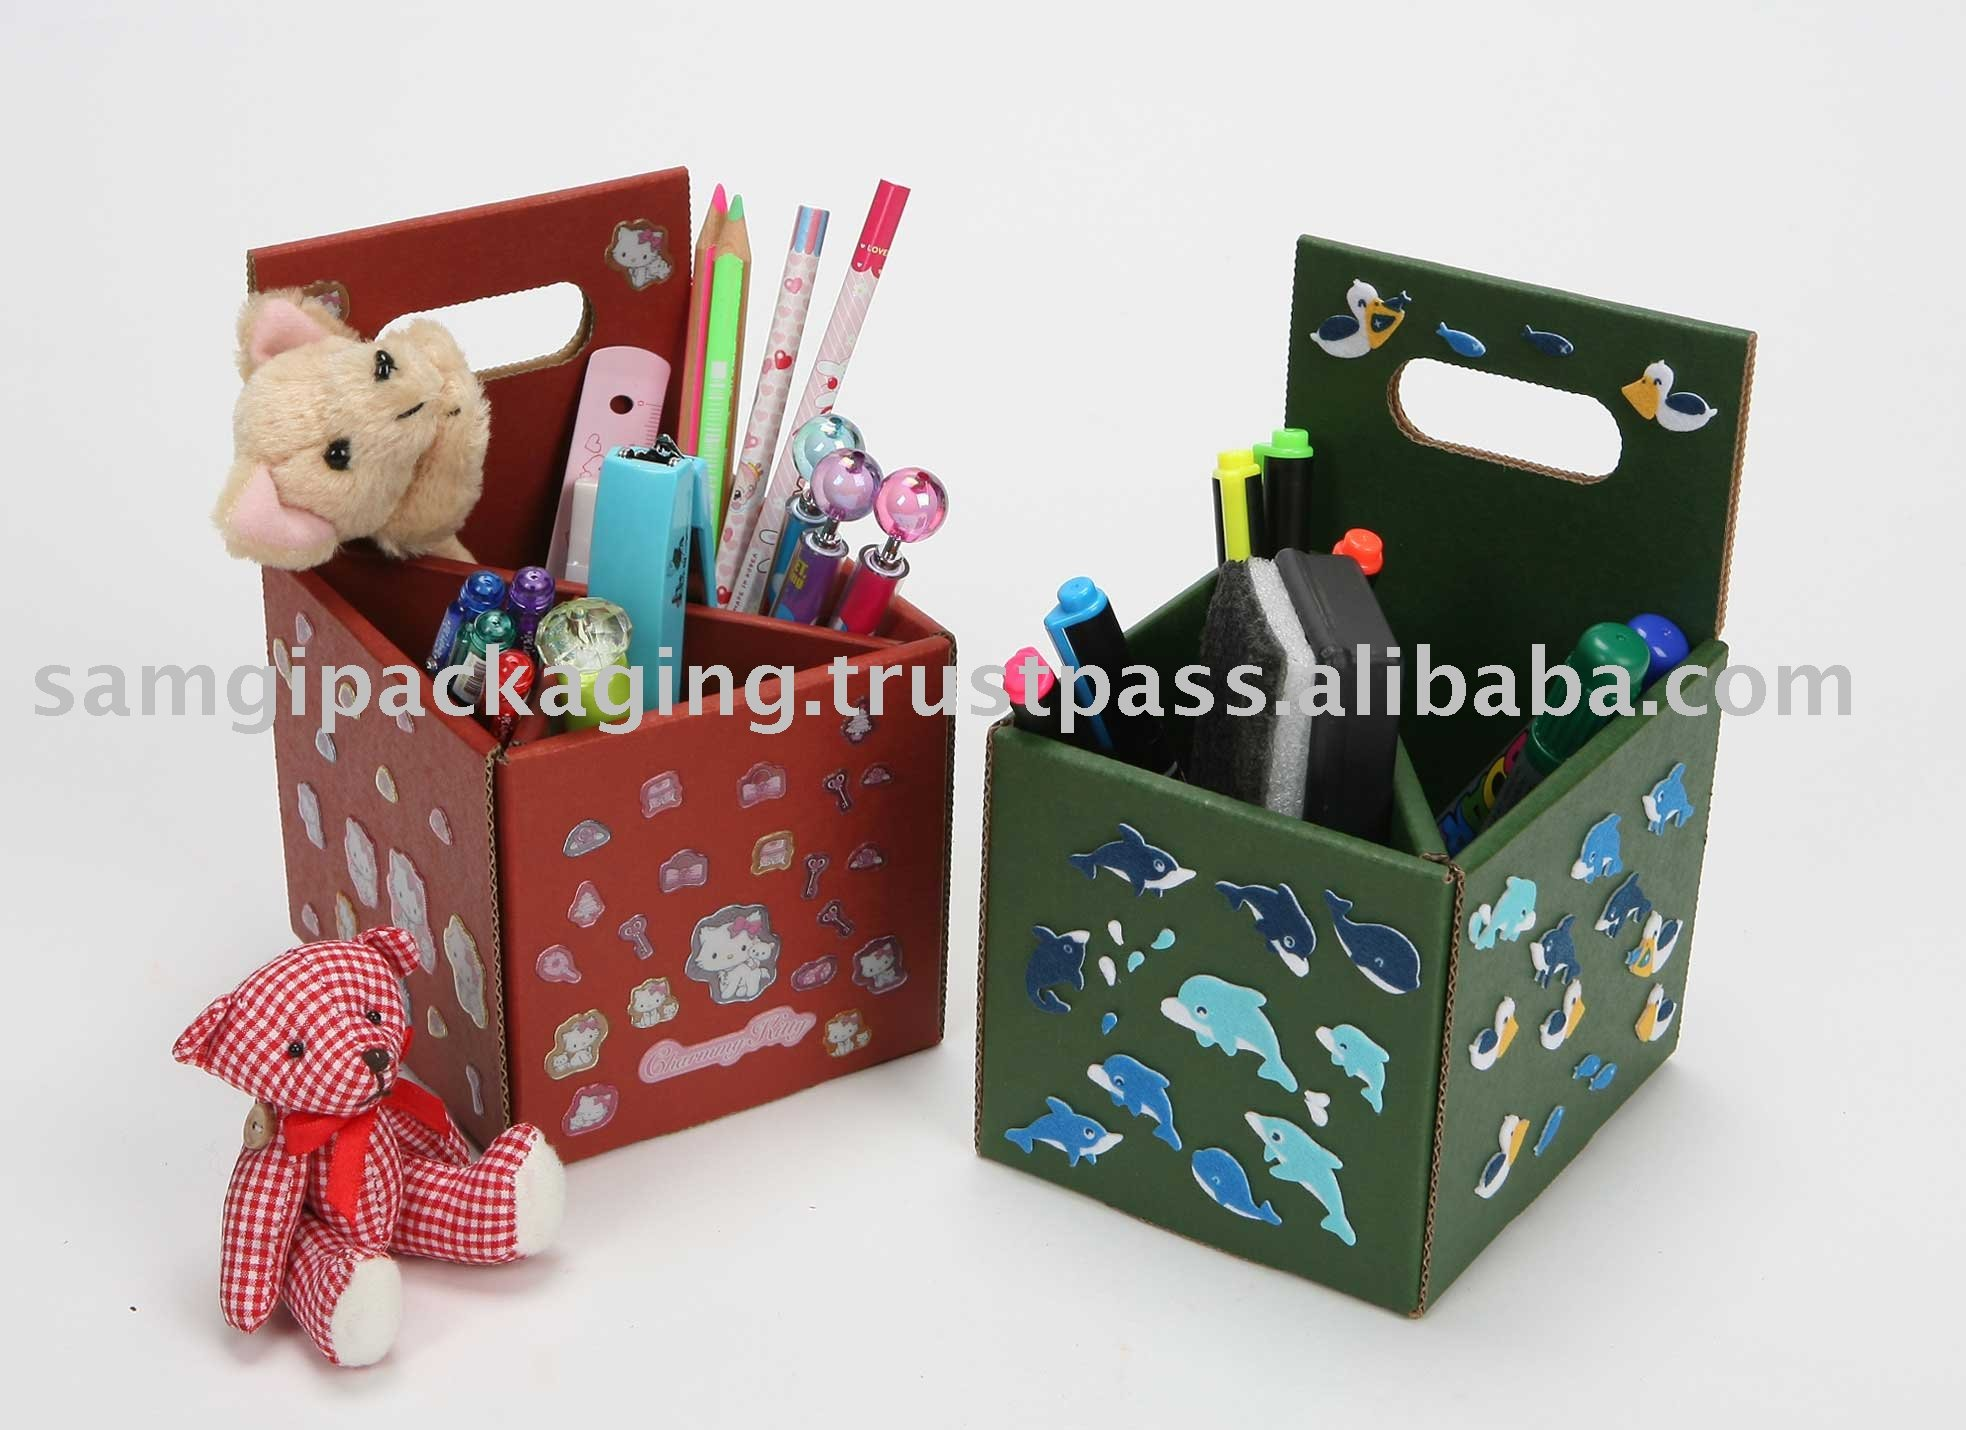 Stationary Boxes Stationery Storage Box Buy Storage Box Home Storage Box Product On Alibaba